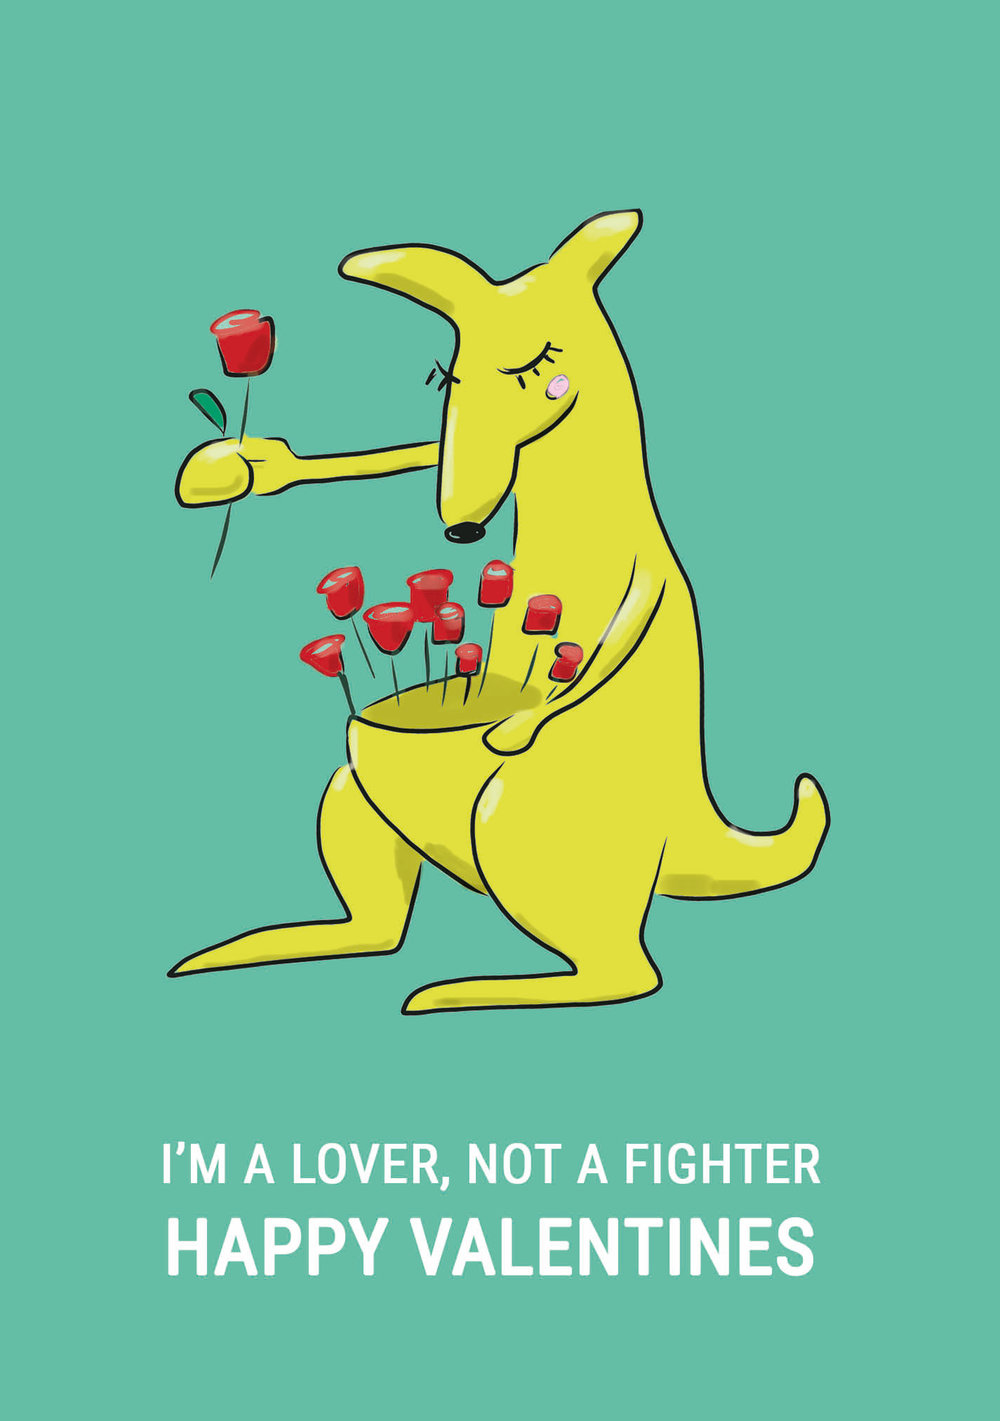 I'm A Lover Not A Fighter: Happy Valentines